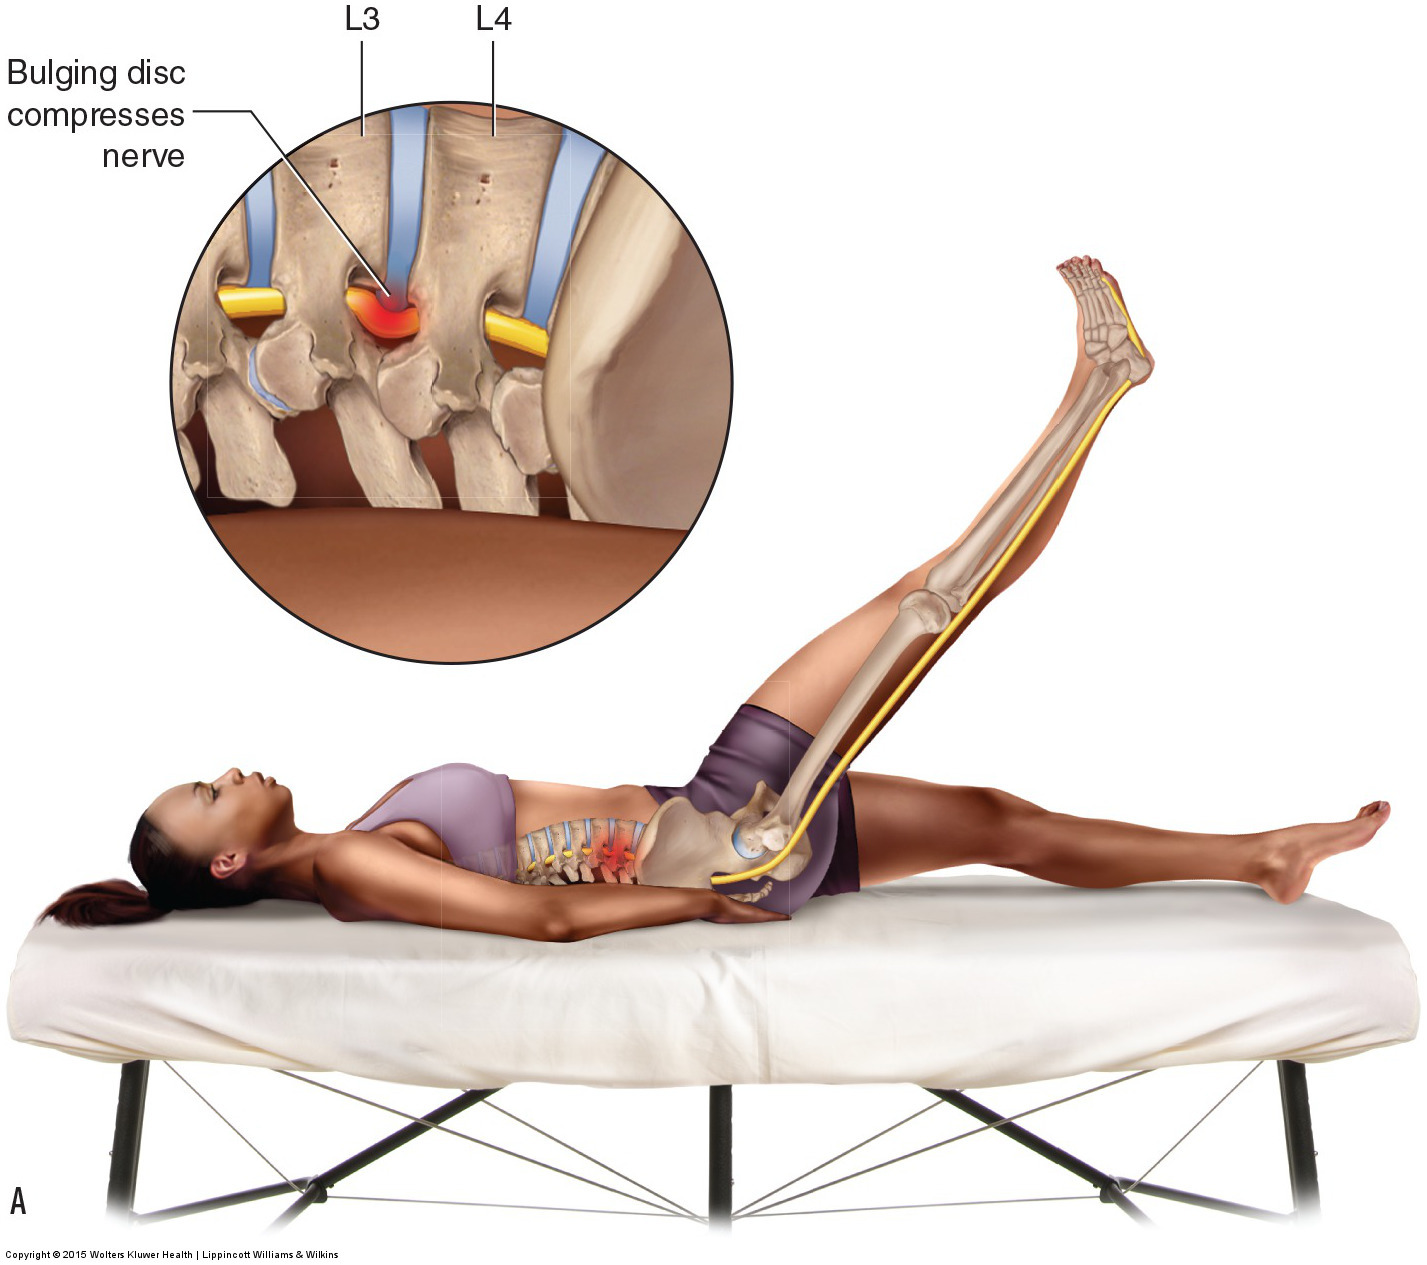 Straight leg raise orthopedic assessment test for a lumbar pathologic disc. Permission: Joseph E. Muscolino. Manual Therapy for the Low Back and Pelvis (2015).